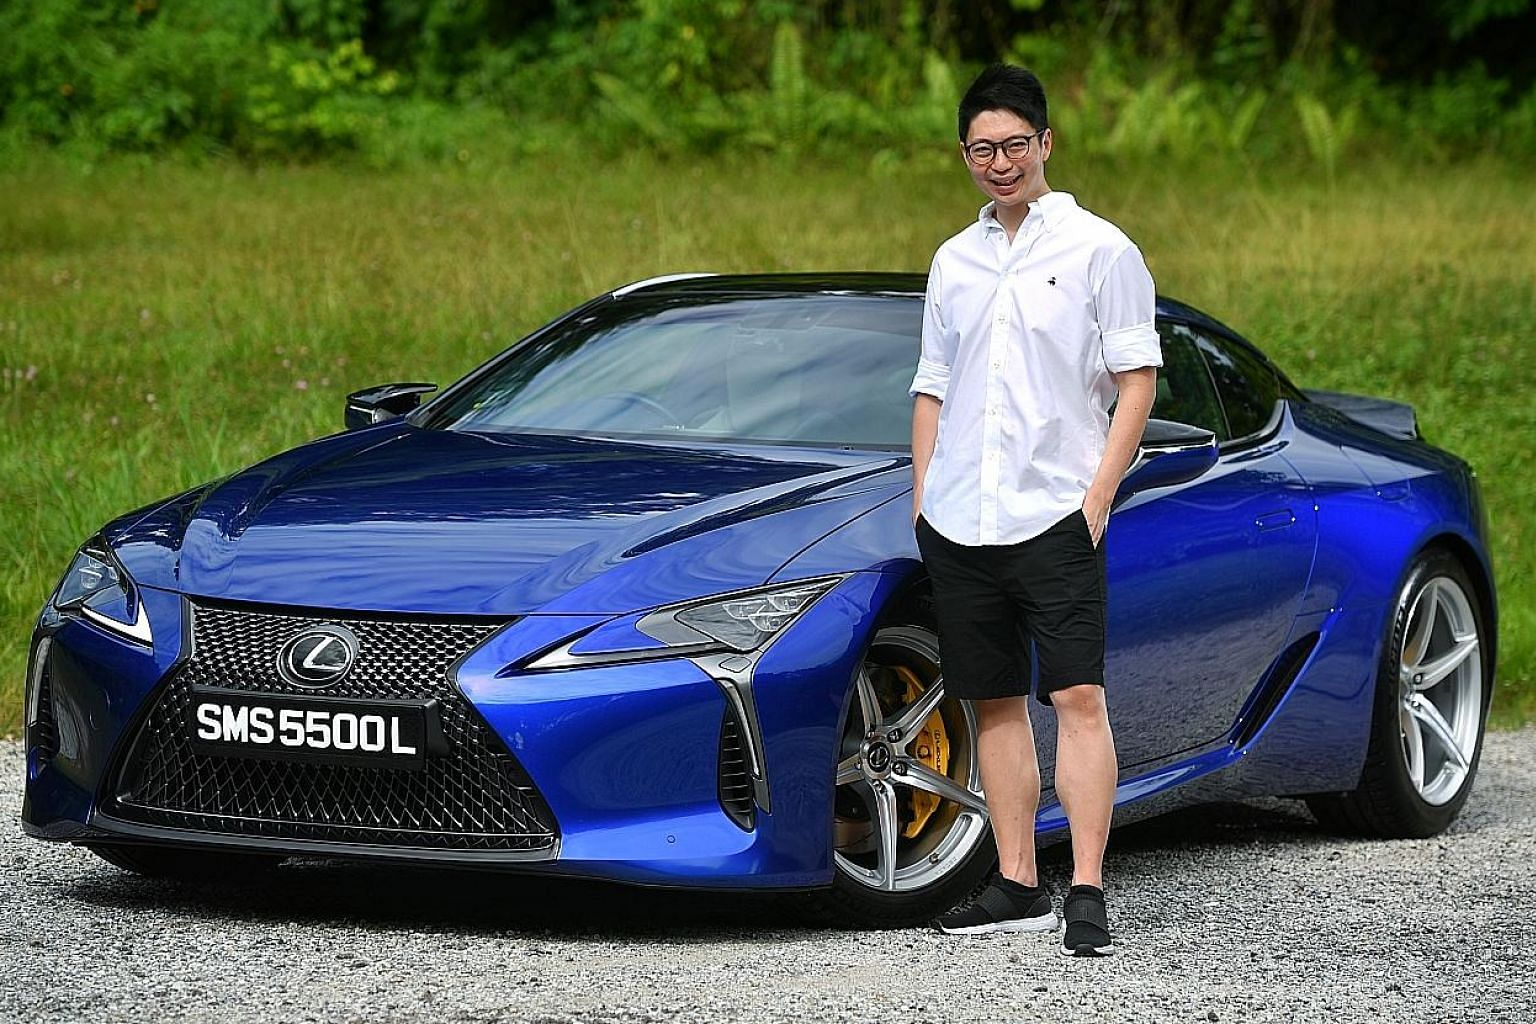 Mr Tom Chen, managing director of an investment firm in the marine logistics industry, paid between $300,000 and $400,000 for the Lexus LC500 and says it is a good buy.